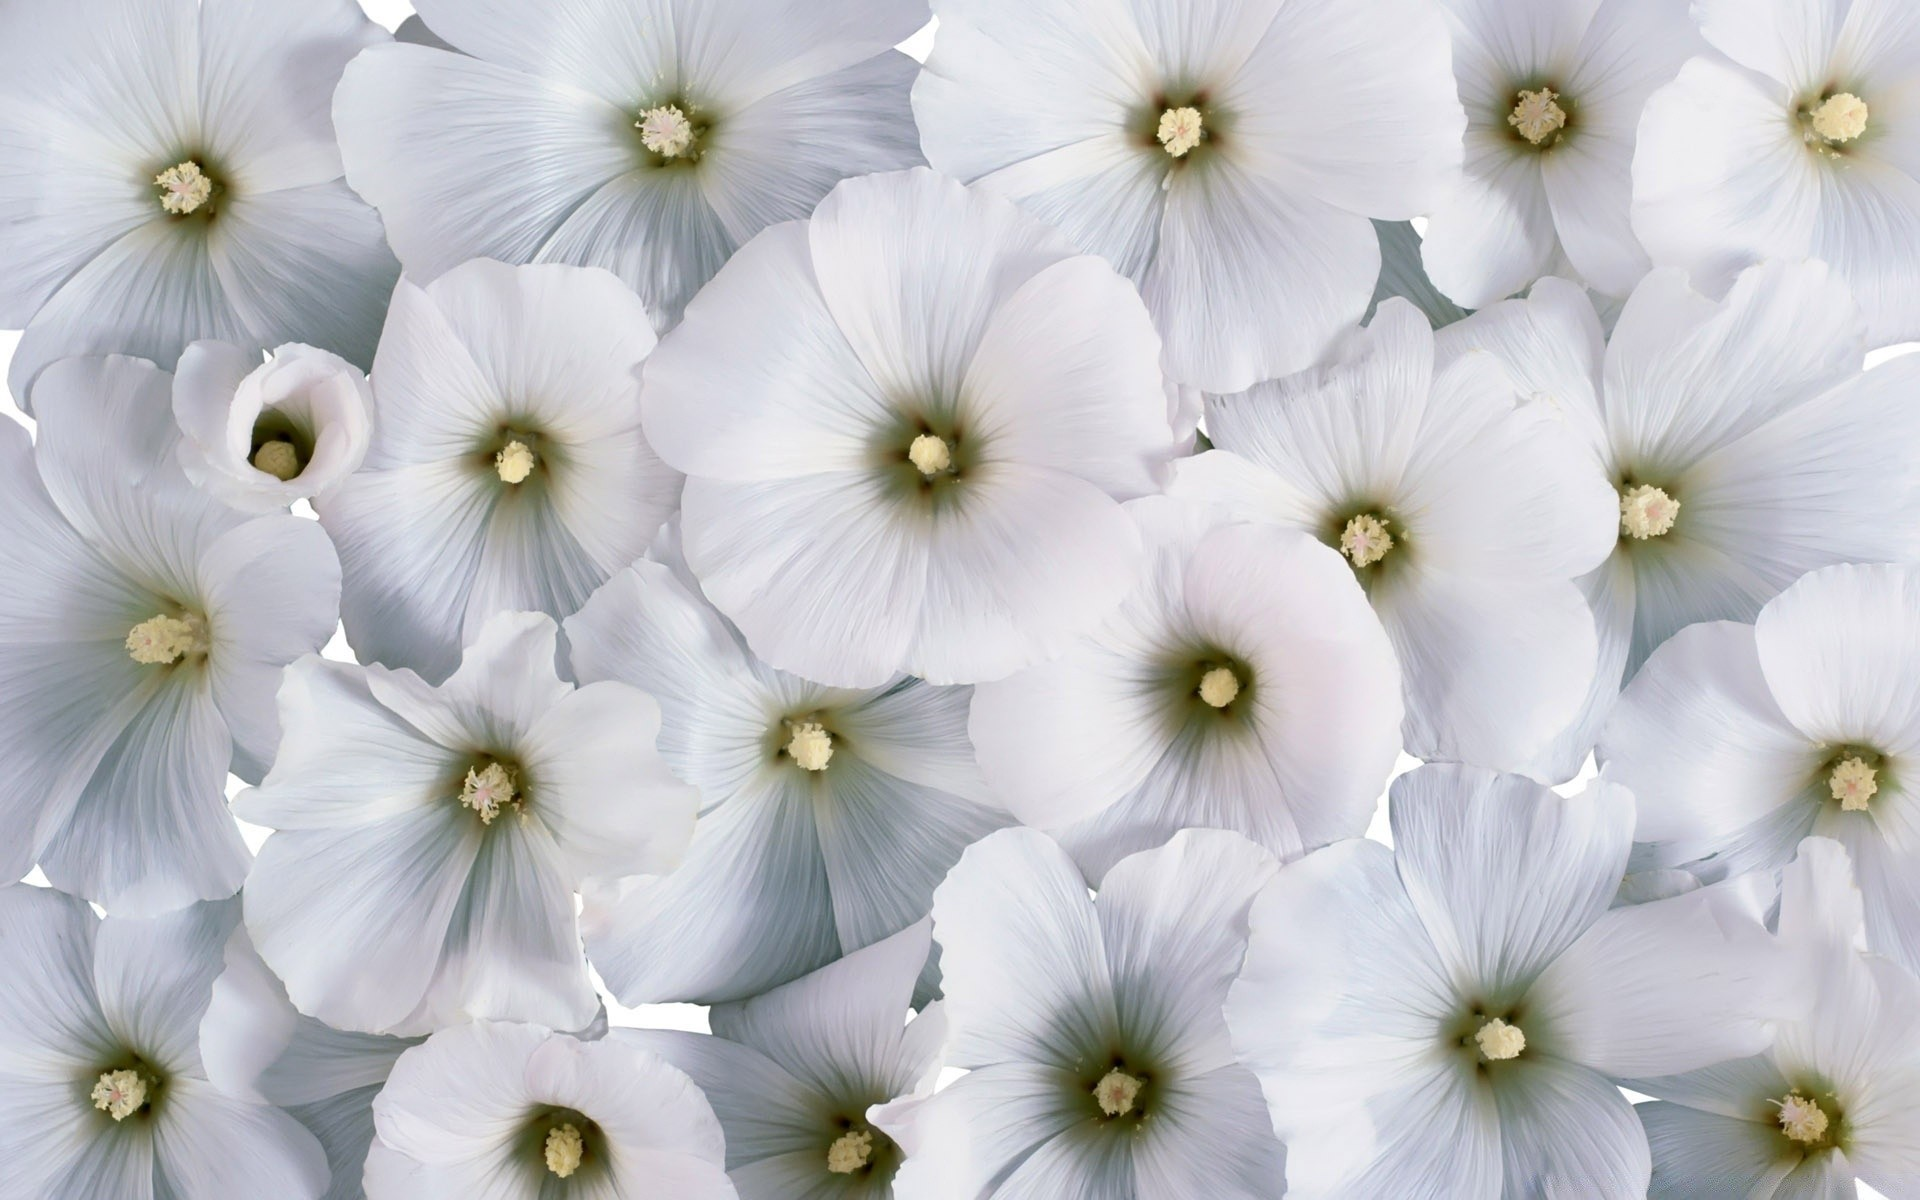 Soft white flowers iphone wallpapers for free mightylinksfo